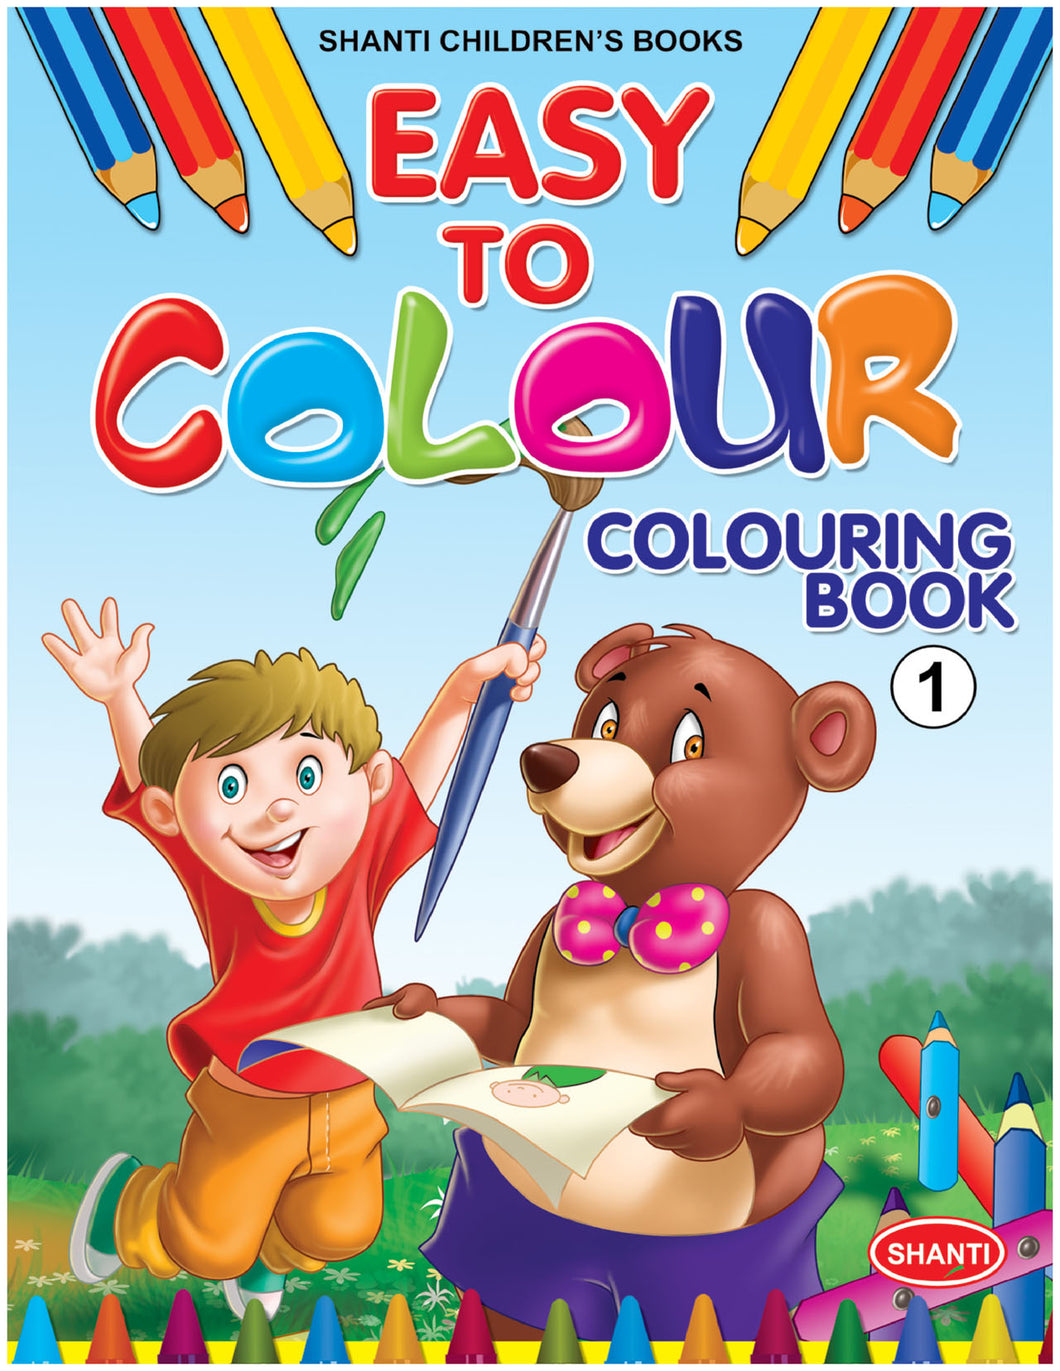 Colouring Book for Kids - Easy to Colour - Colouring Book - 1